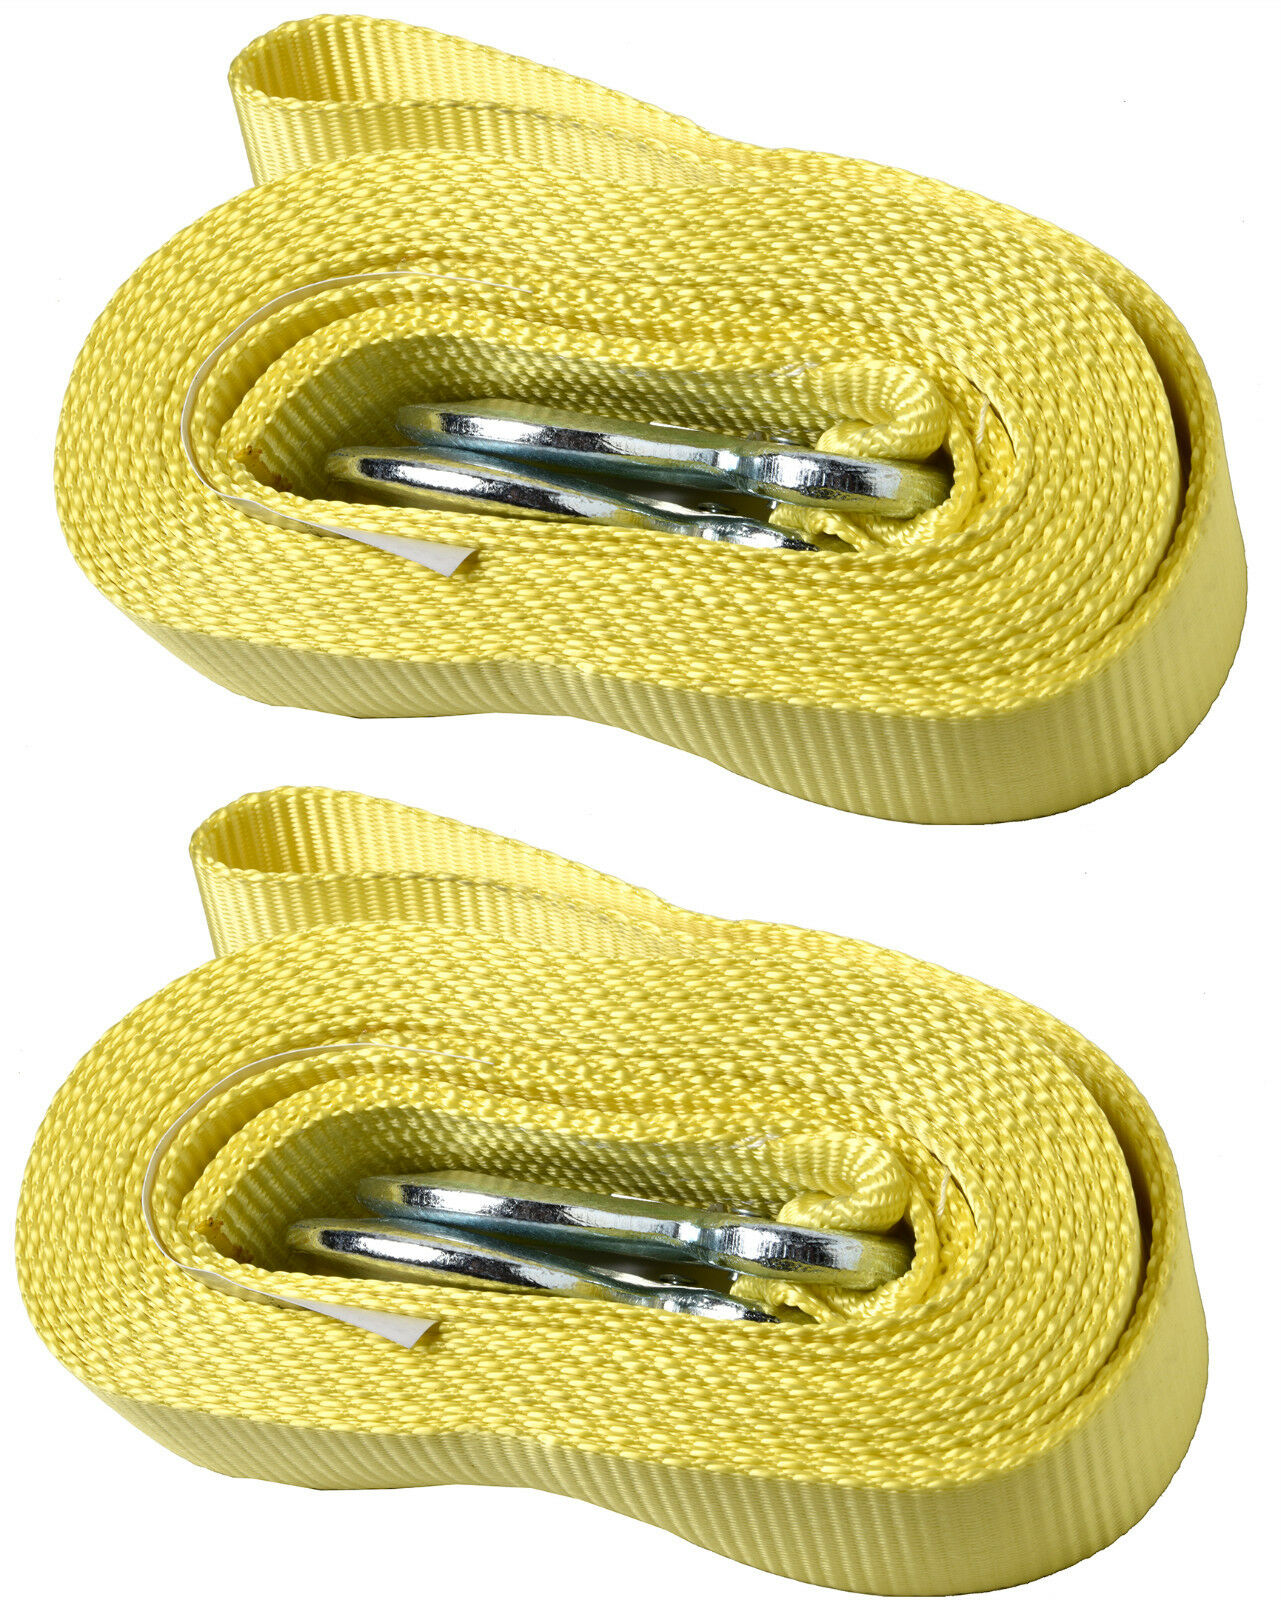 Two (2)Y7 - 2 Inch x 20 Ft. Polyester Tow Strap Rope 2 Hooks 11,000lb Heavy Duty